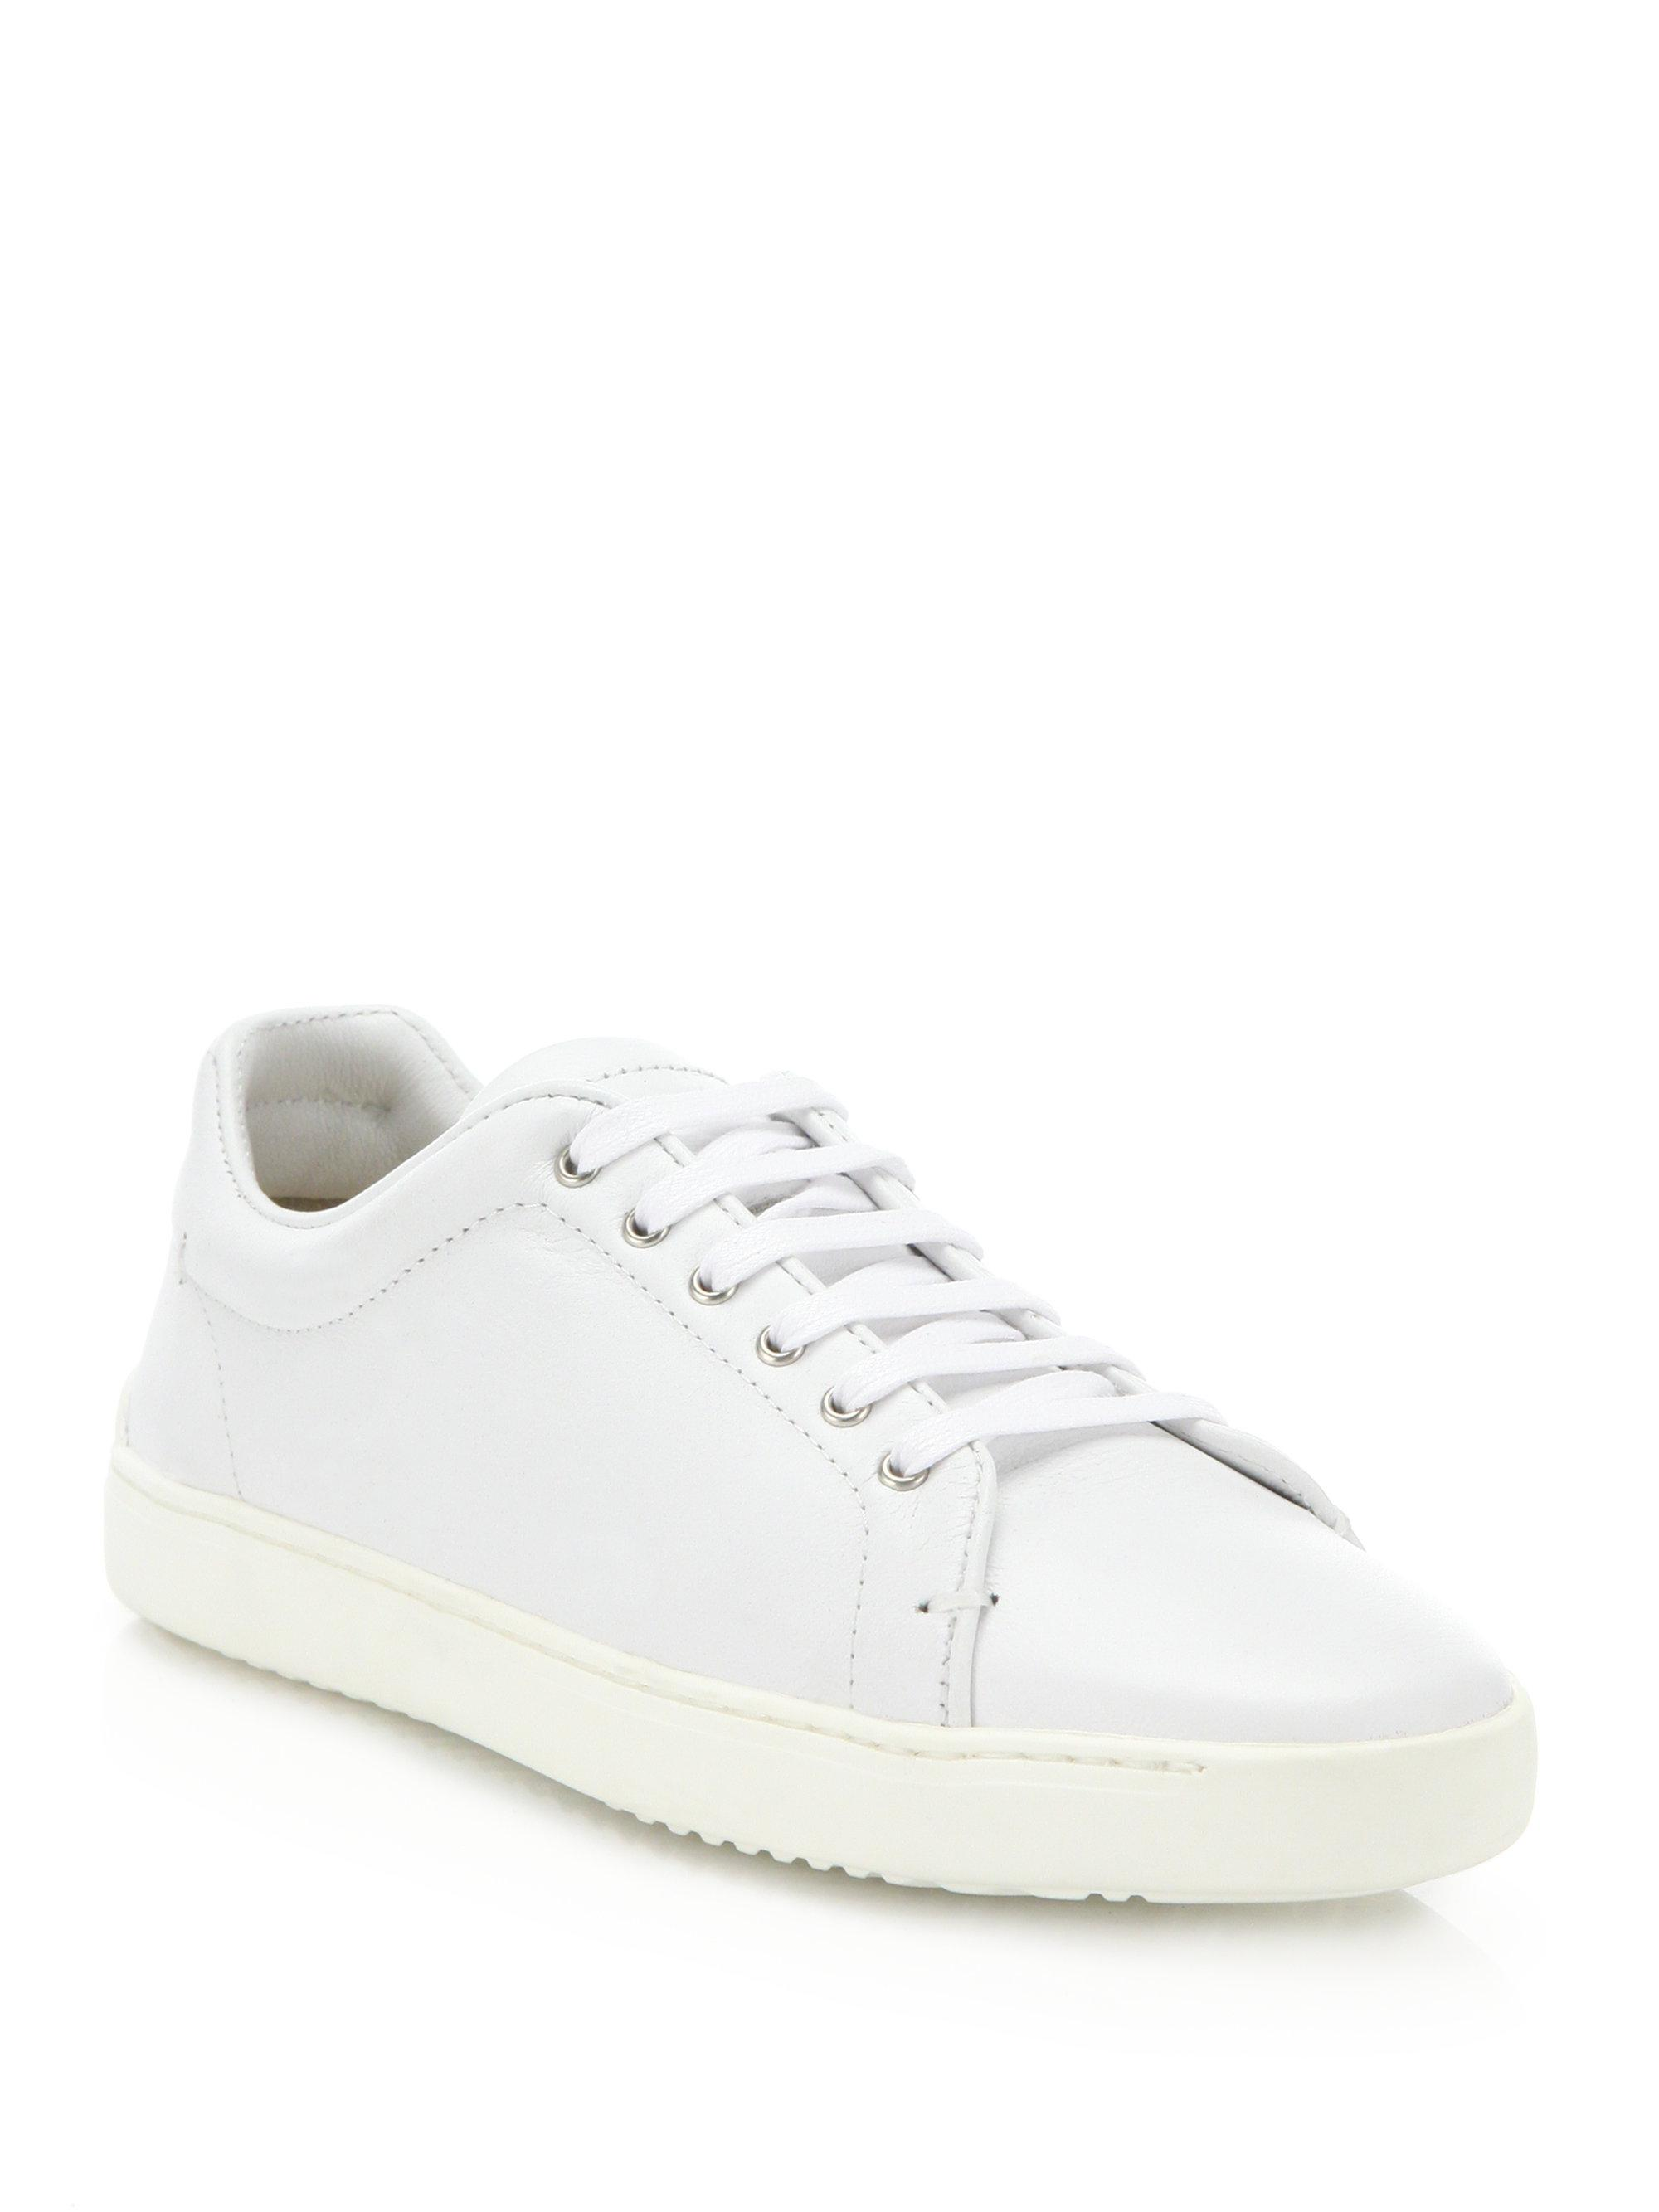 Rag & Bone. Women's White Kent Leather Low-top Trainers